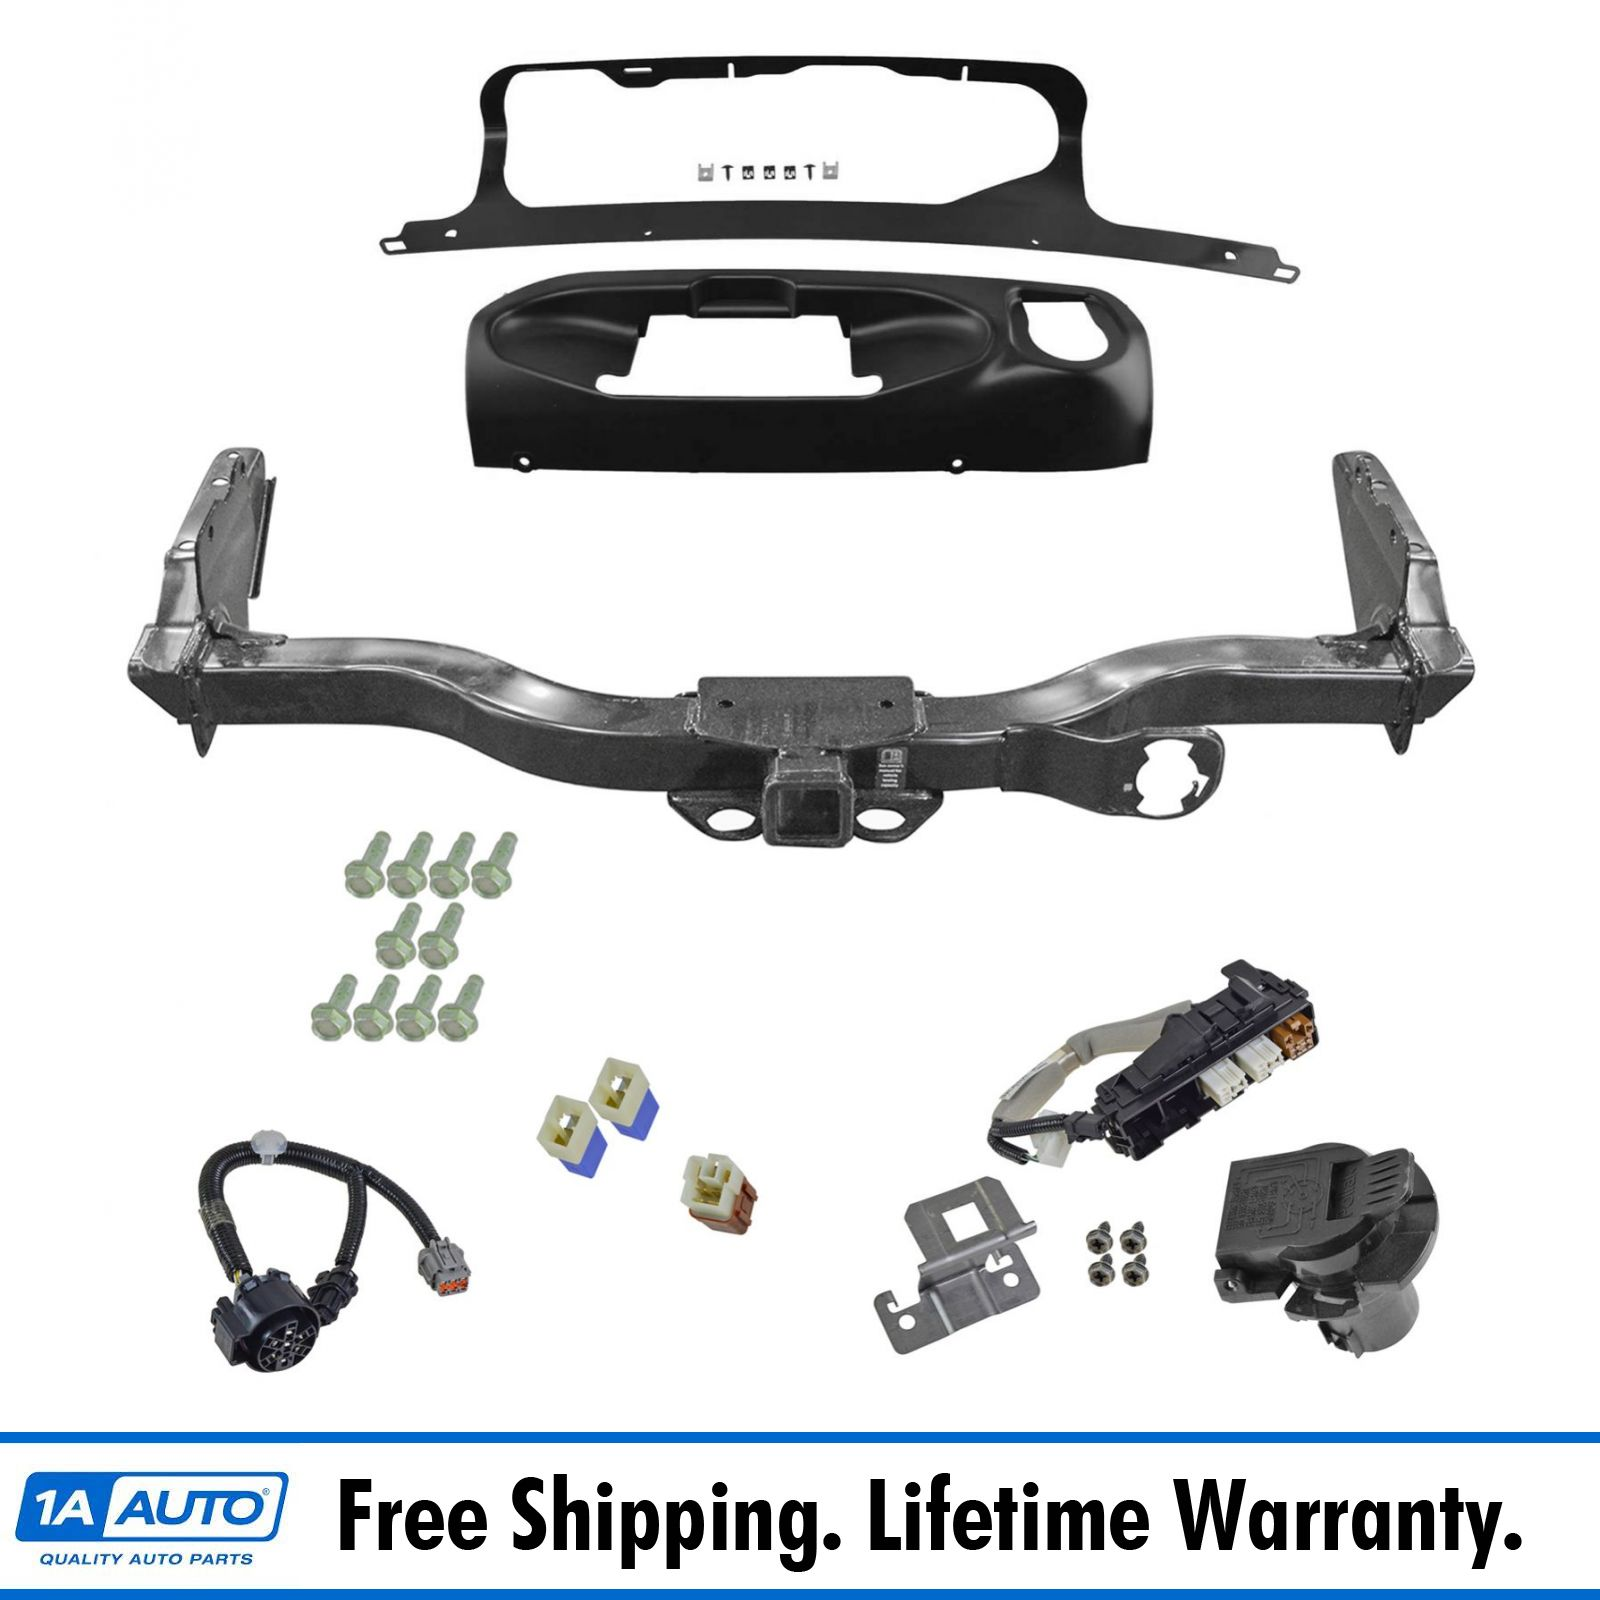 hight resolution of oem trailer tow hitch receiver w harness and finisher kit for nissan pathfinder